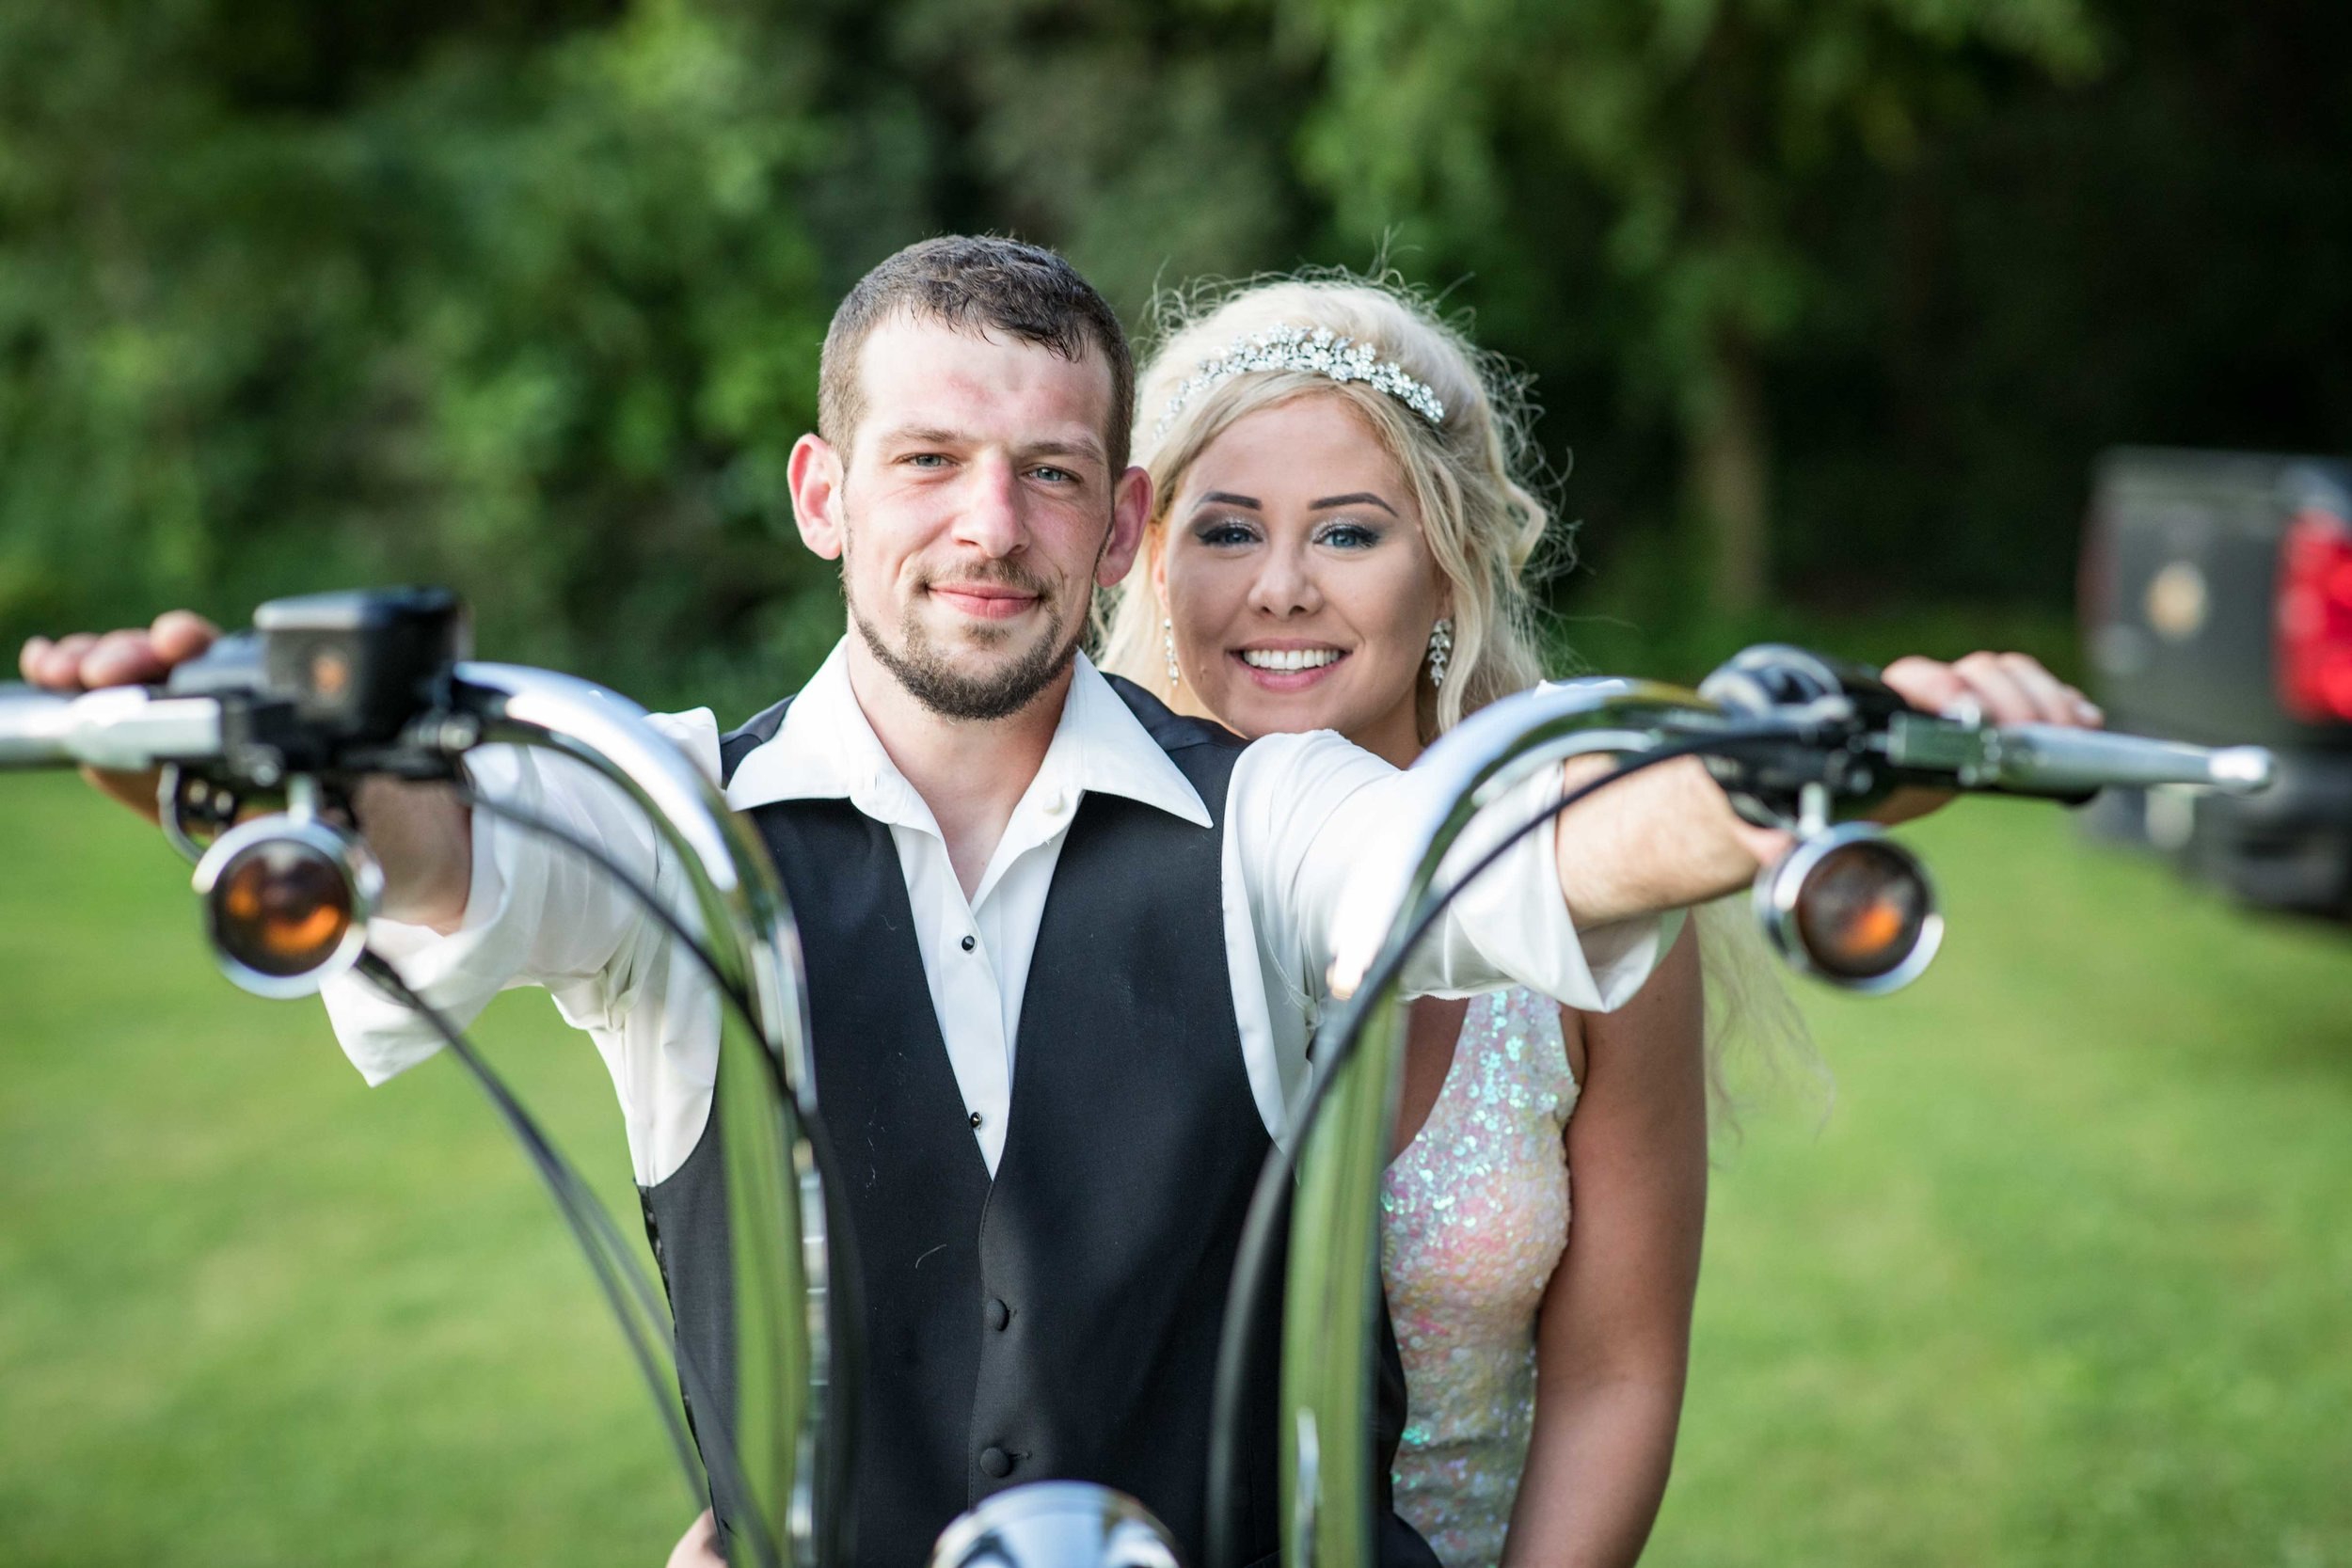 The Bride and Groom pose for a photo on the motorcycle before riding off together.